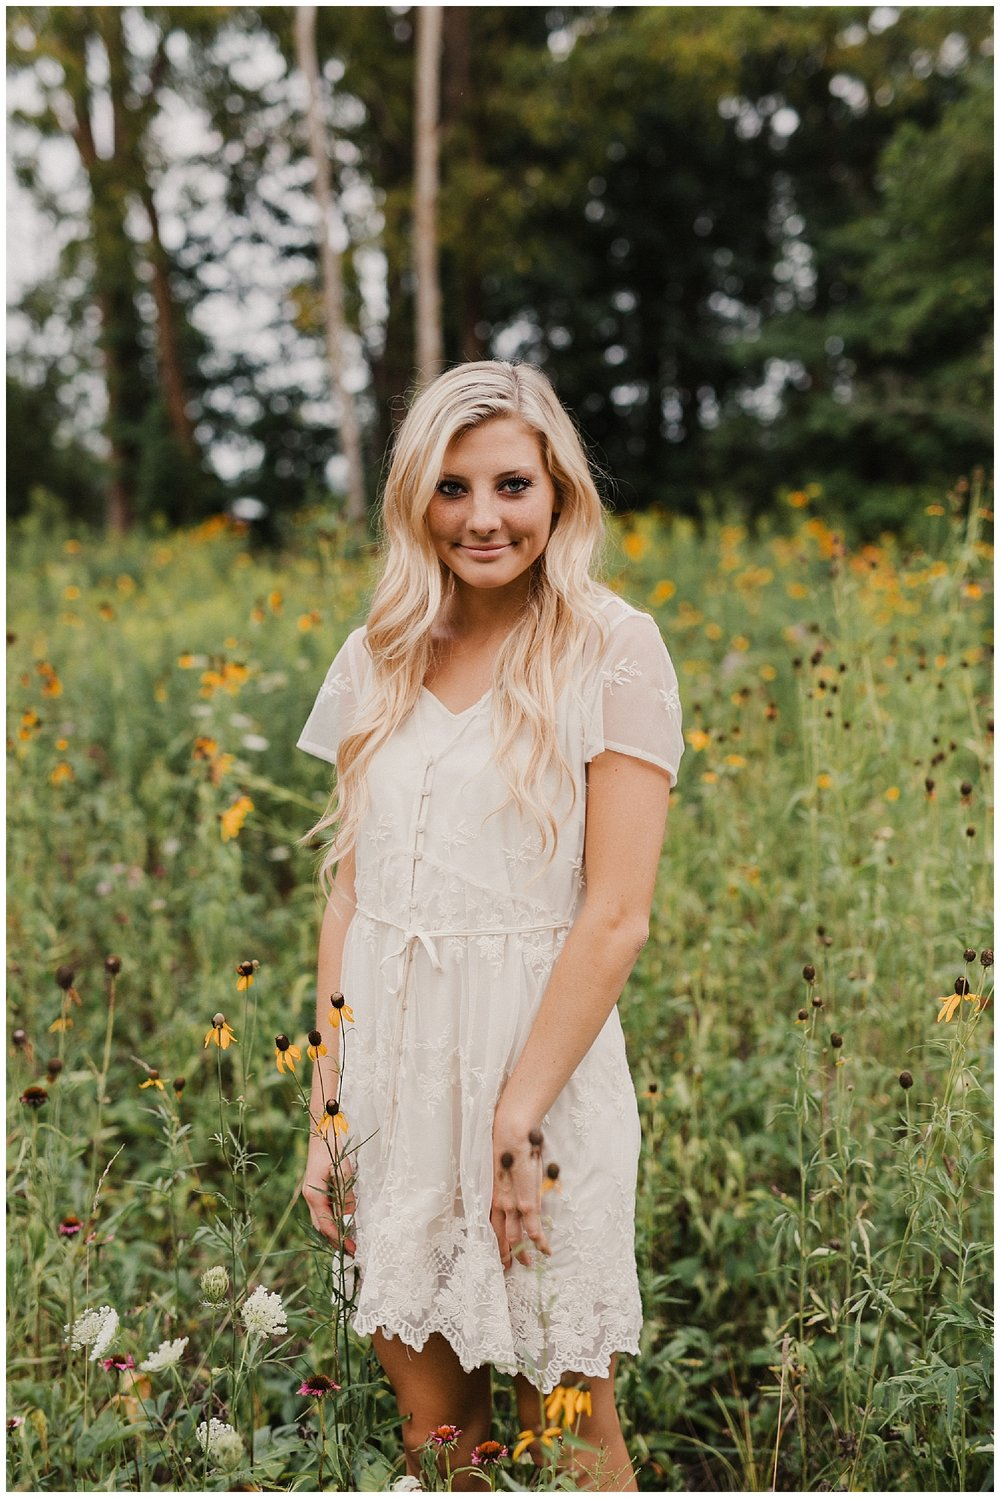 lindybeth photography - senior pictures - lexi-128.jpg